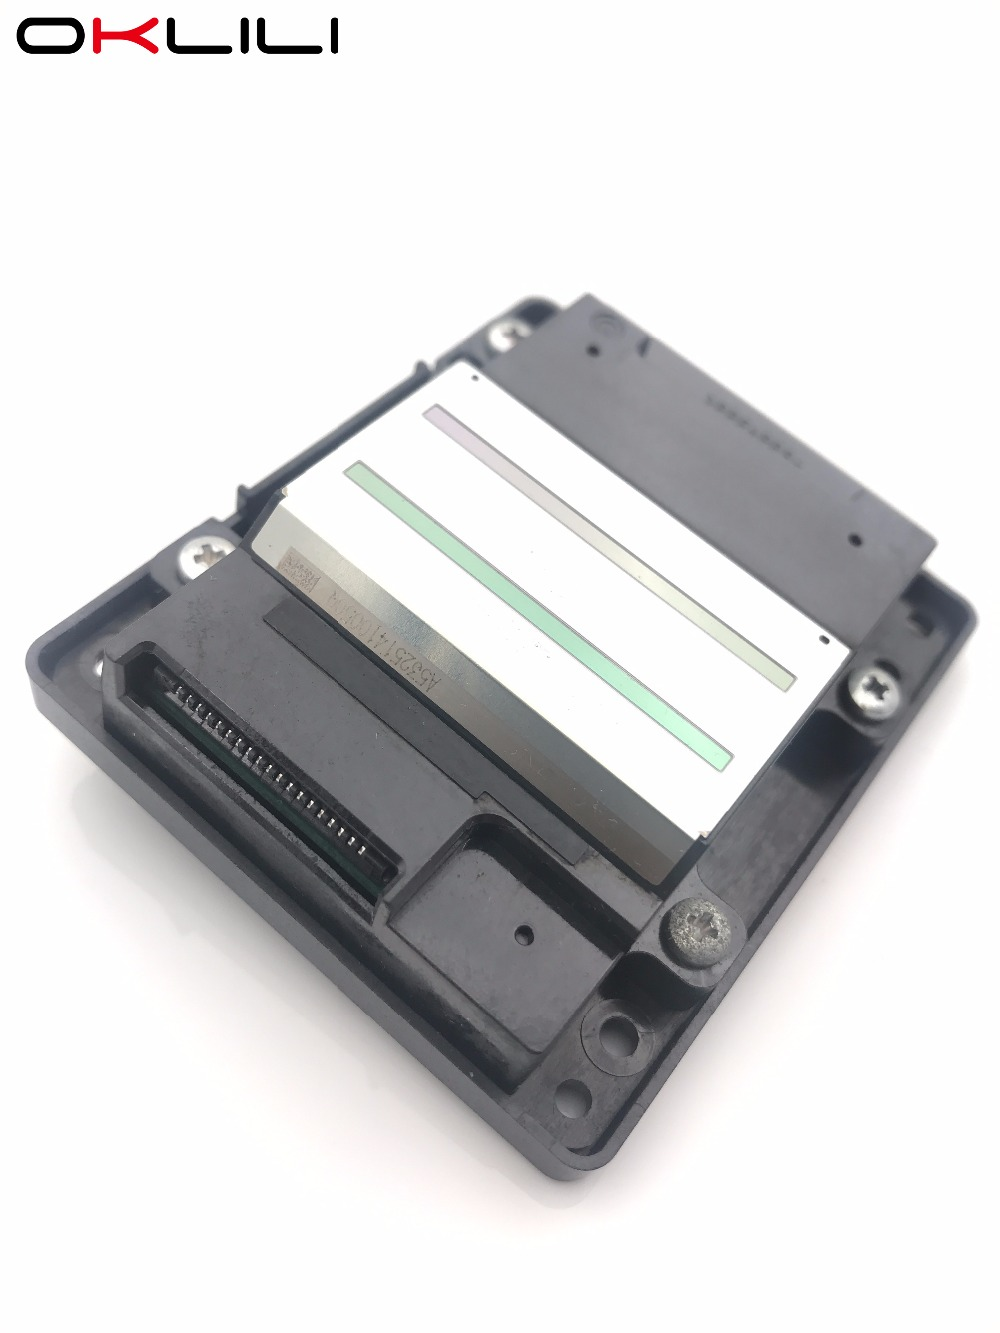 188 T1881 Printhead Printer Print Head for Epson WF-3620 WF-3621 WF-3640 WF-3641 WF-7110 WF-7111 WF-7610 WF-7611 WF-7620 WF-7621 for epson wf 7620 printhead for epson wf 7610 high print head printhead for epson wf 7620 wf 7610 wf 7611 wf 7111 wf 3640